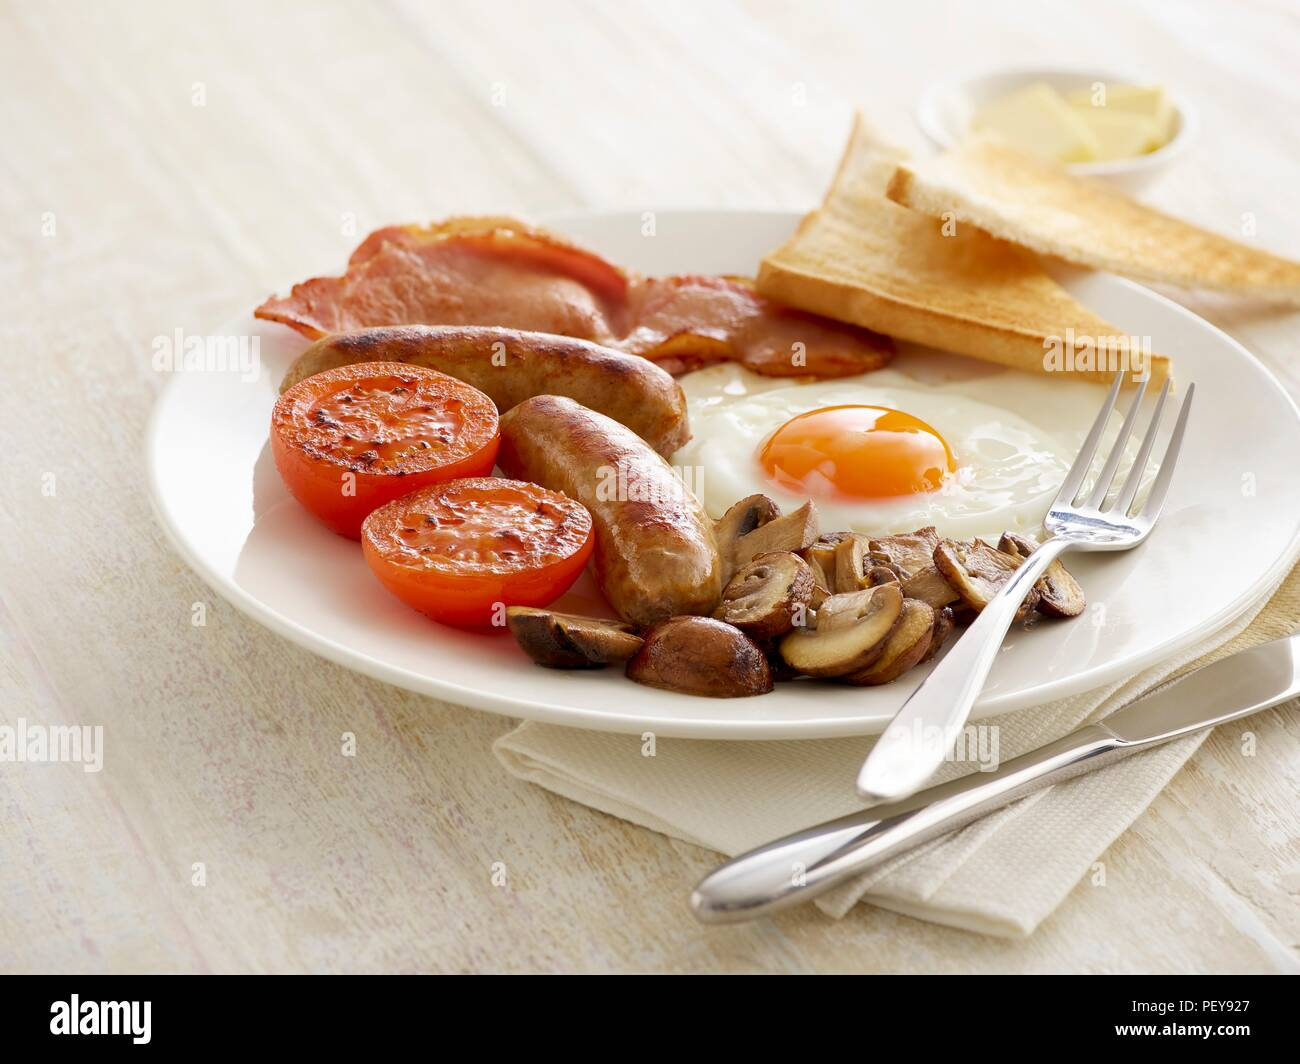 Full English breakfast served on a plate. - Stock Image